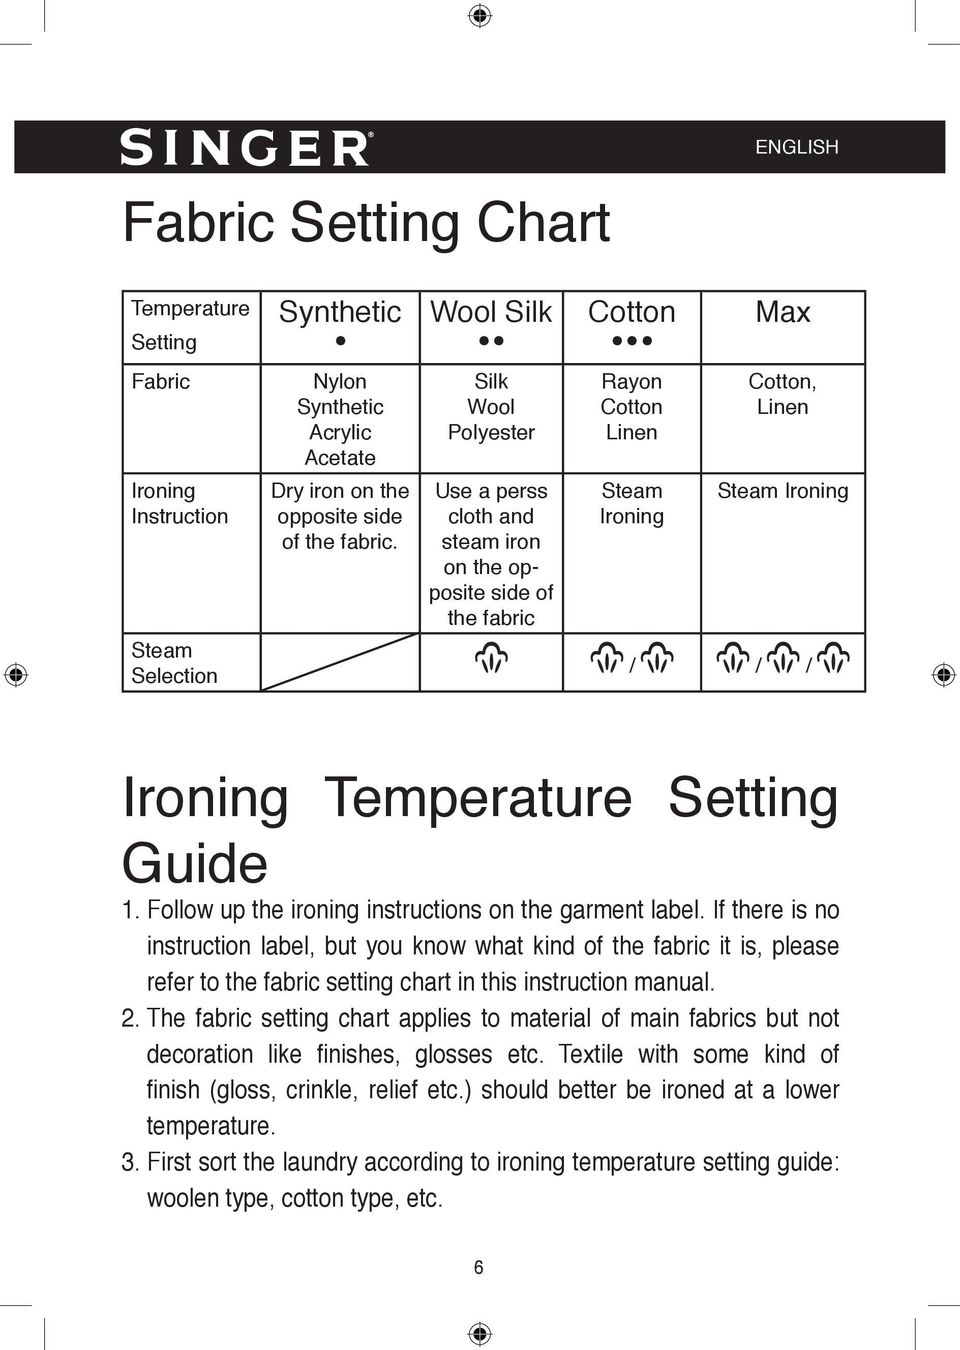 Setting Guide 1. Follow up the ironing instructions on the garment label.